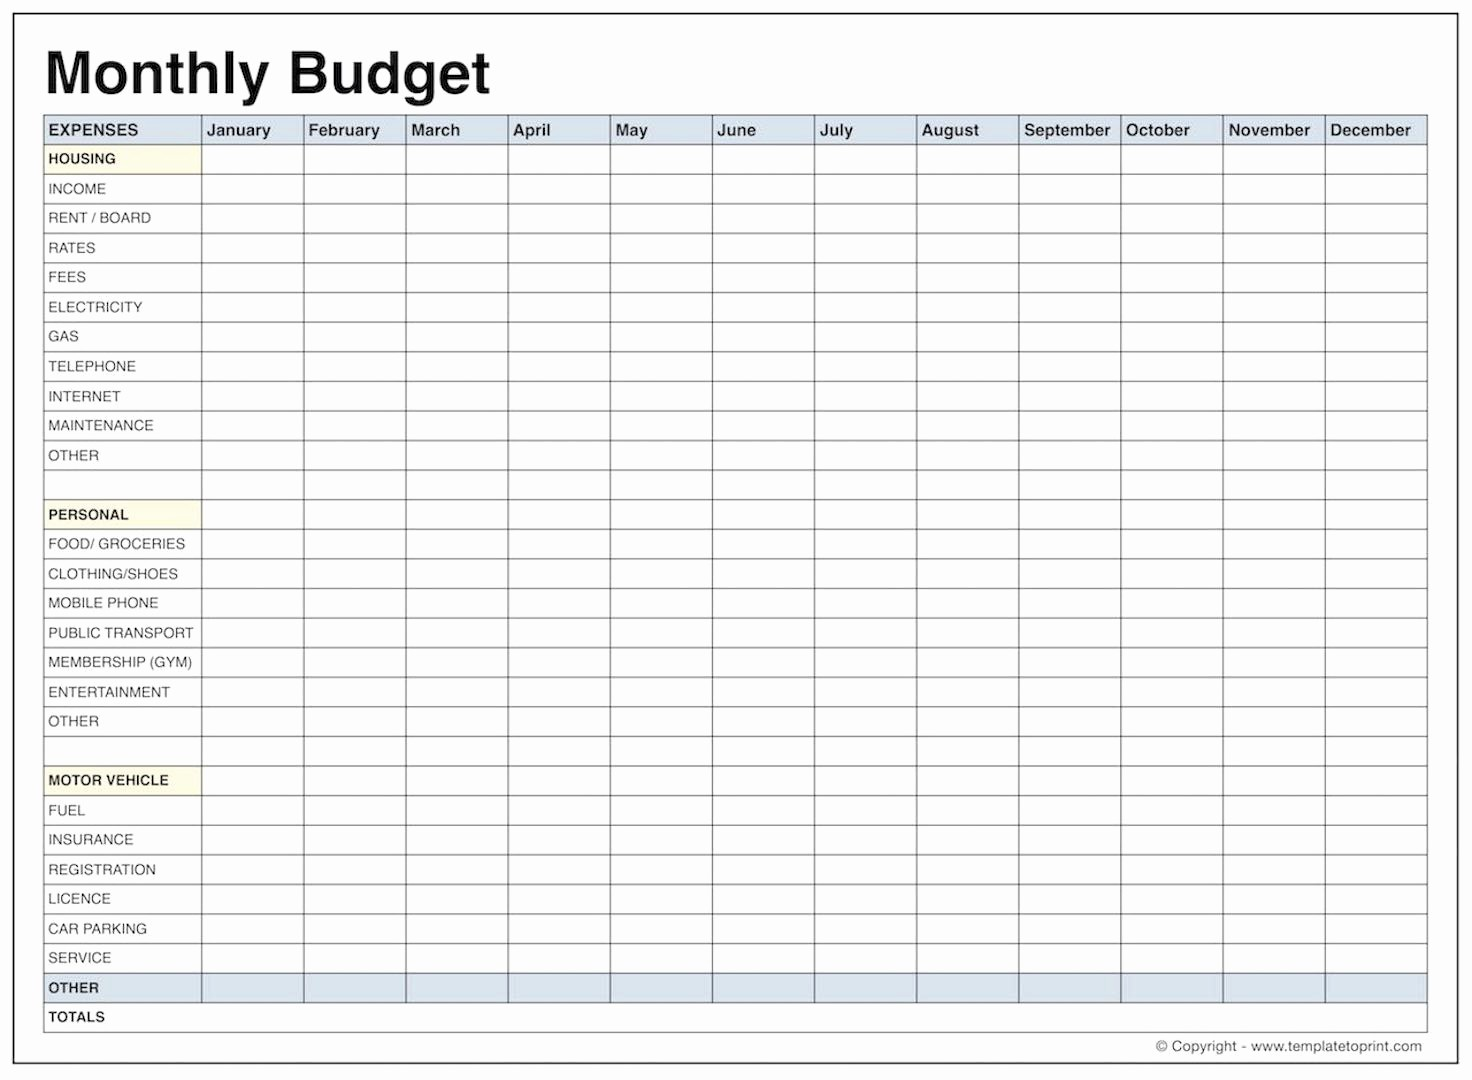 Monthly Budget Template Free Printable